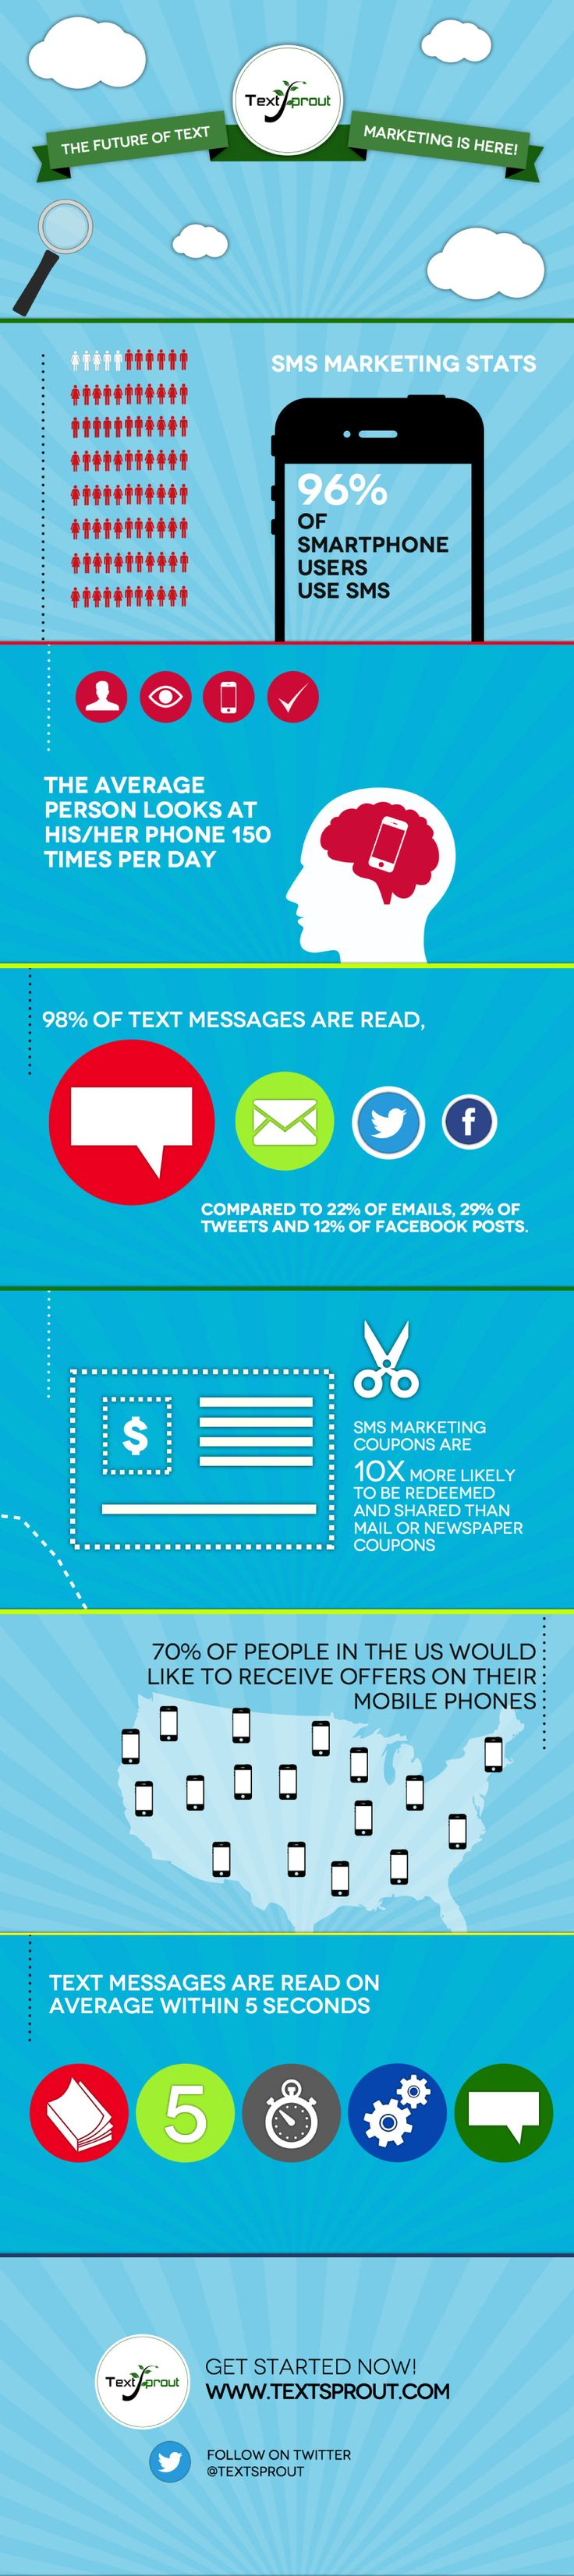 The statistics we've compiled below prove just how popular SMS Marketing is, and why brands should explore the world of Text Marketing to increase s